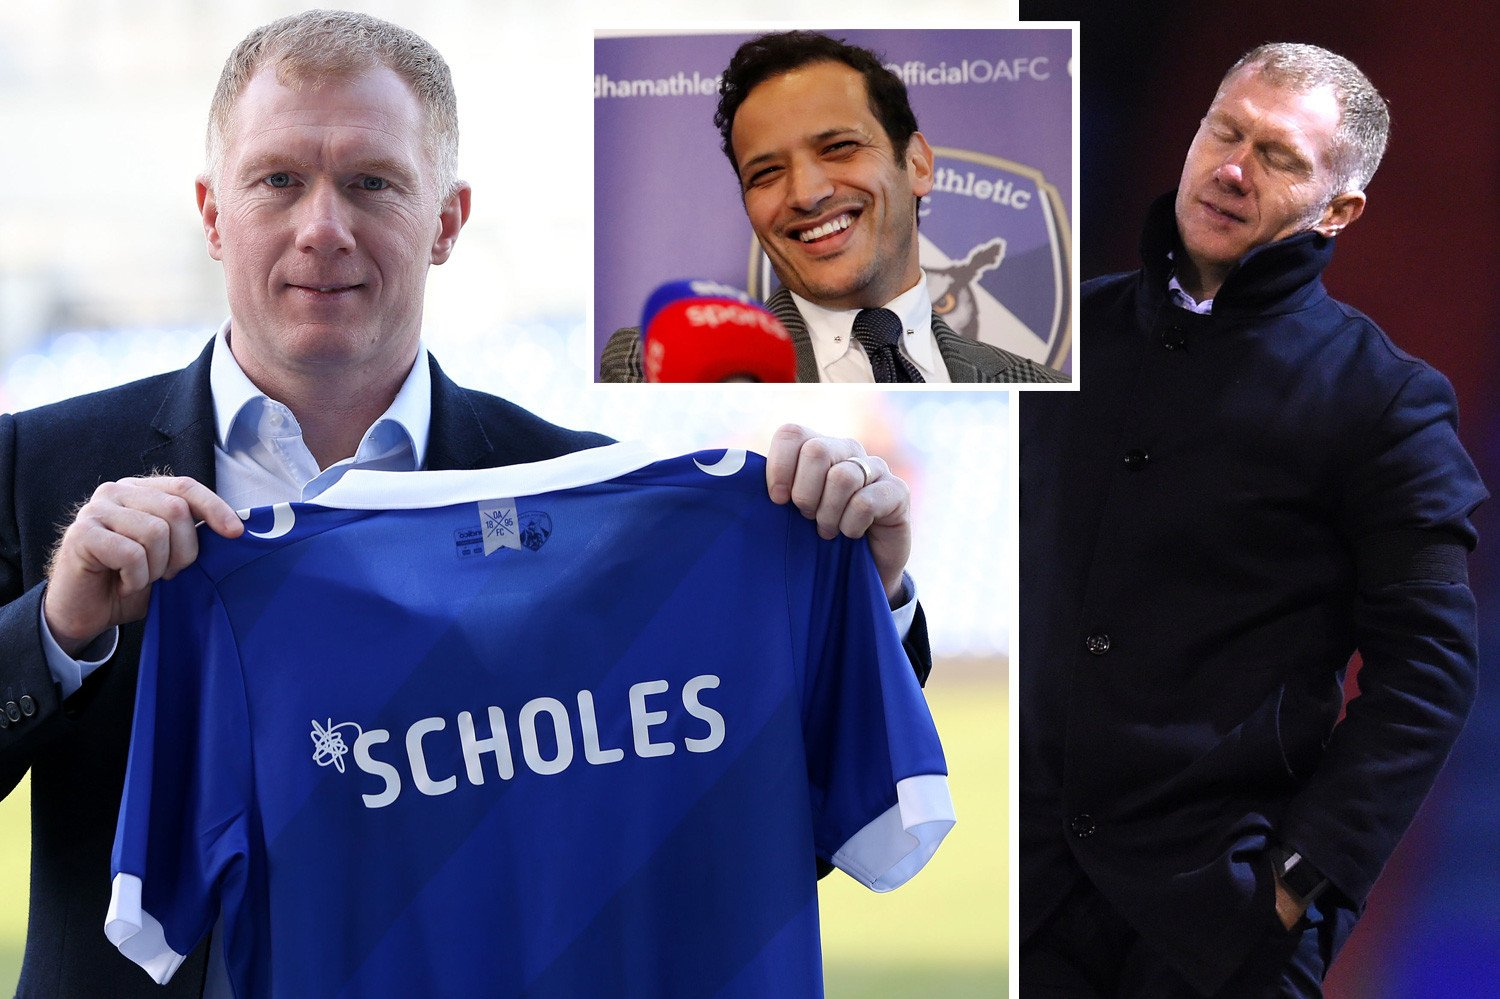 Inside Man Utd legend Paul Scholes' disastrous one-month Oldham reign from chairman picking team to bailiffs turning gas off